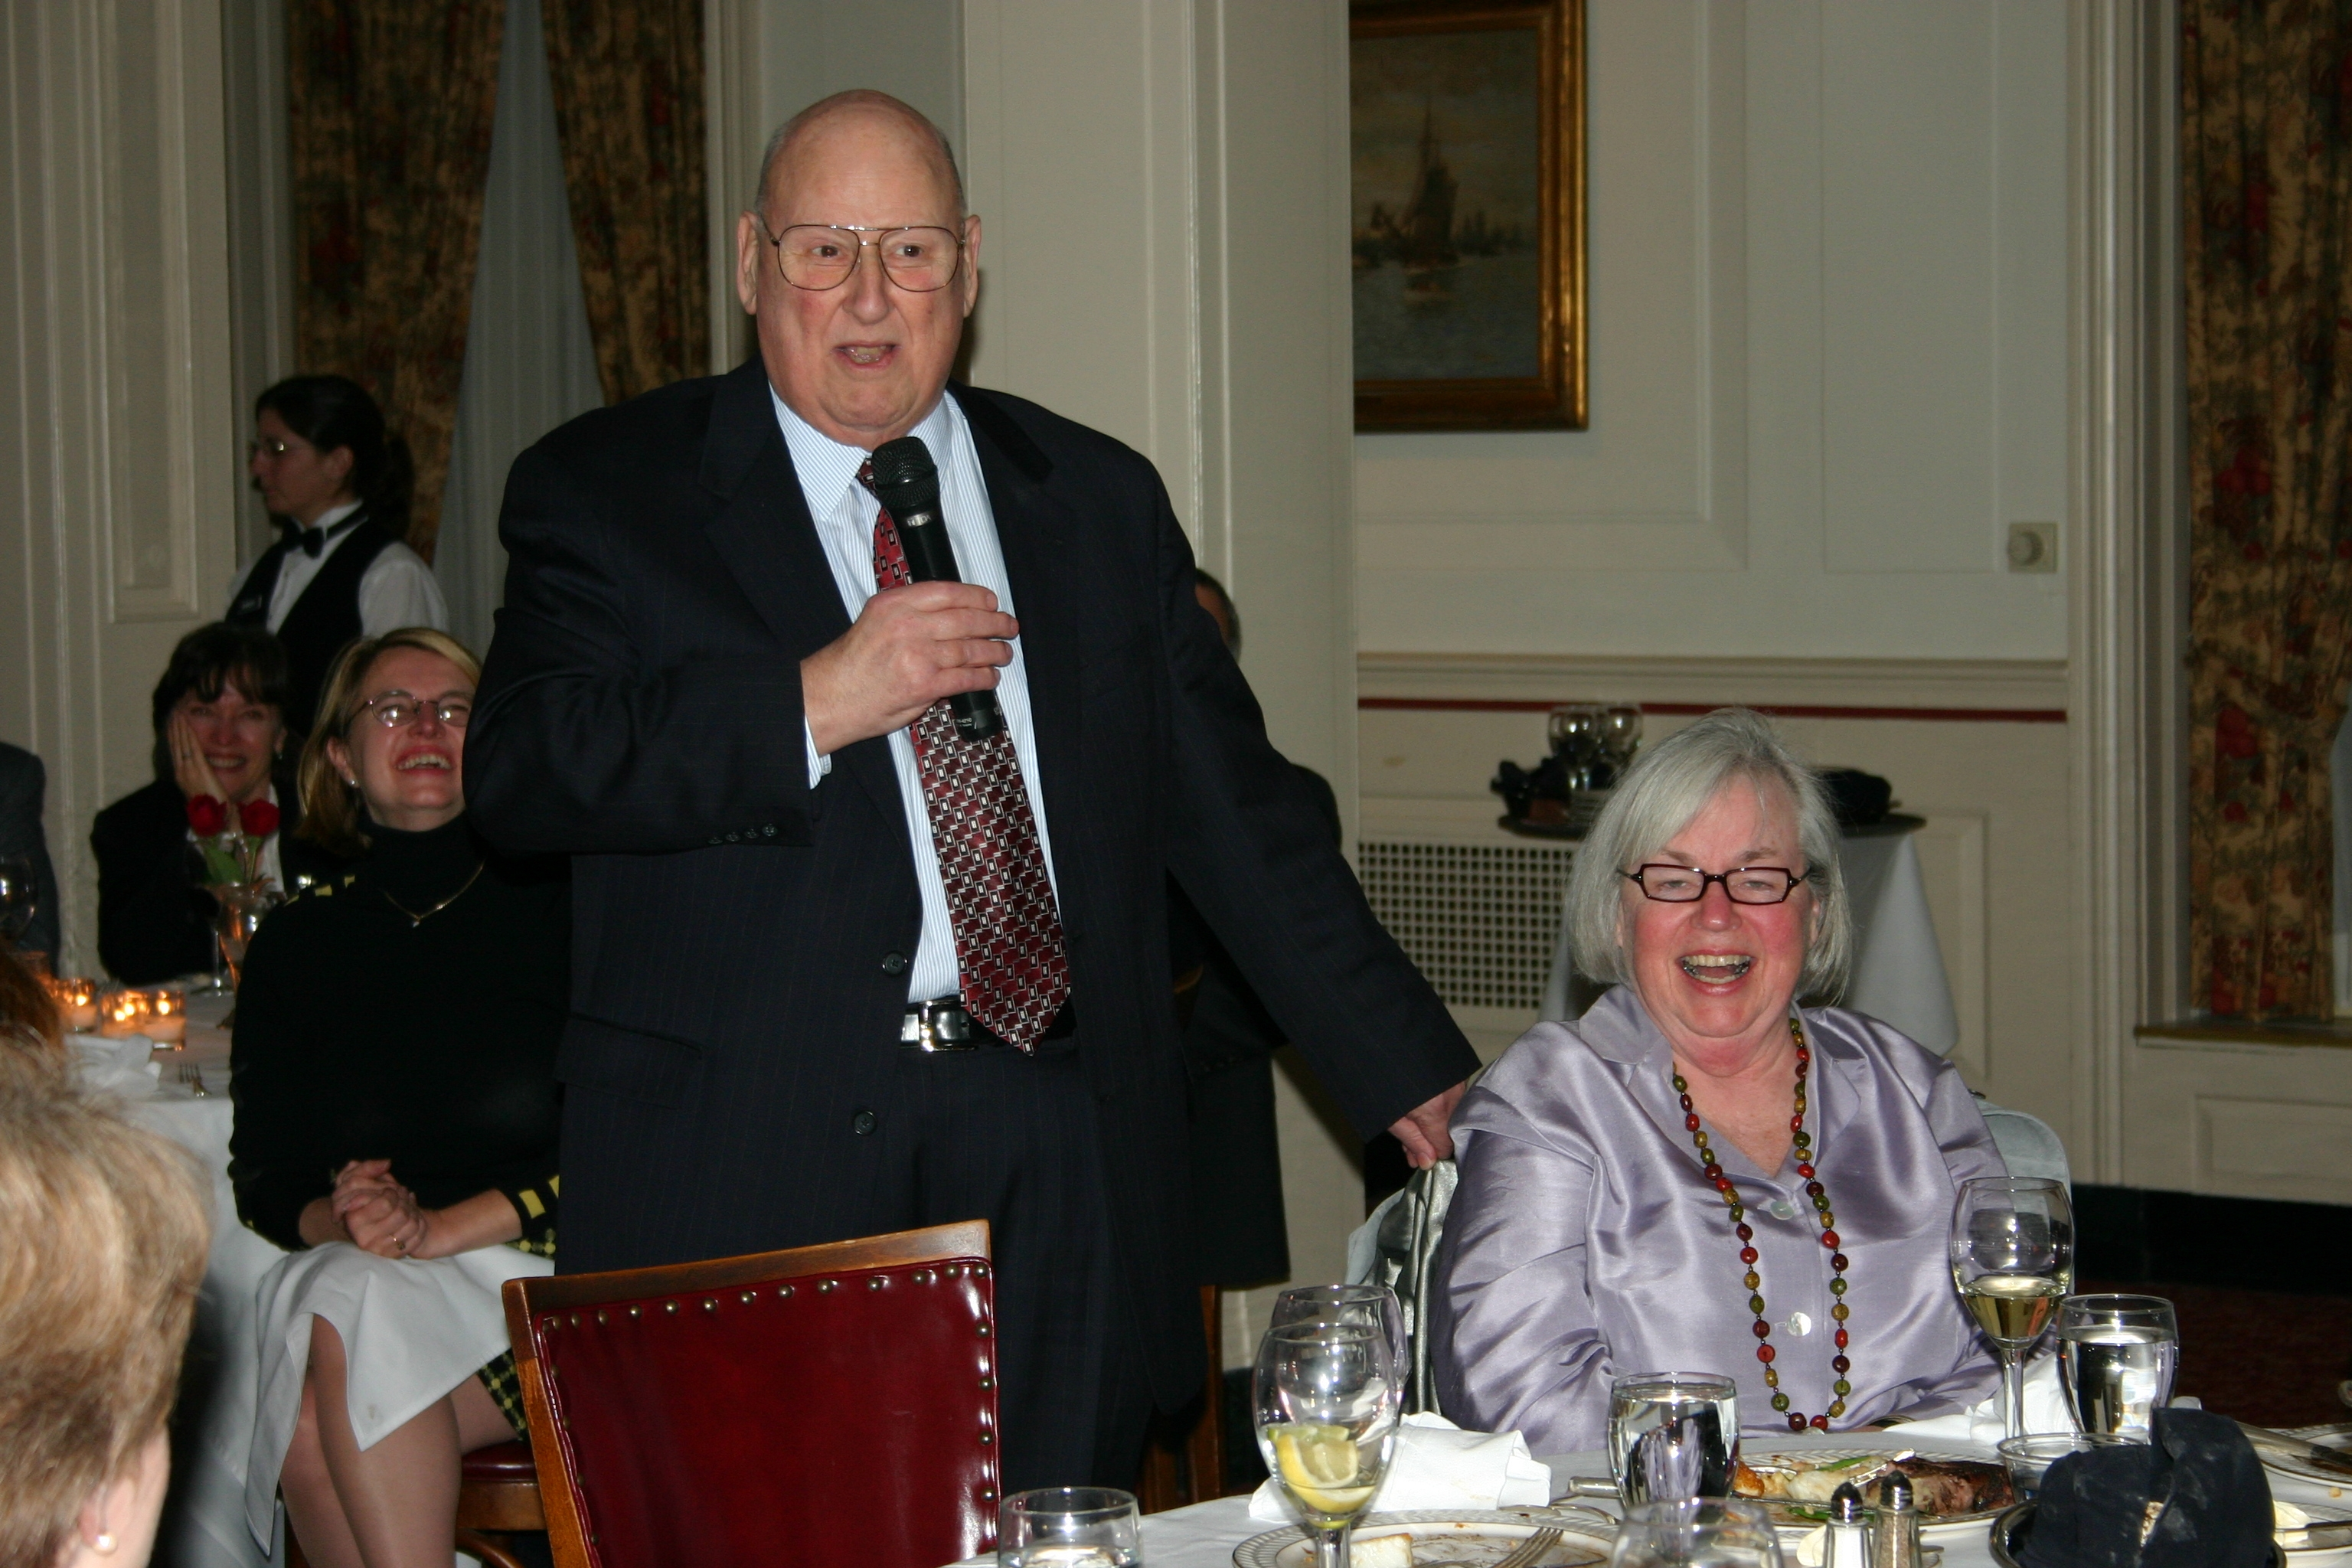 The Hon. Ralph Winter '60 and Kate Winter